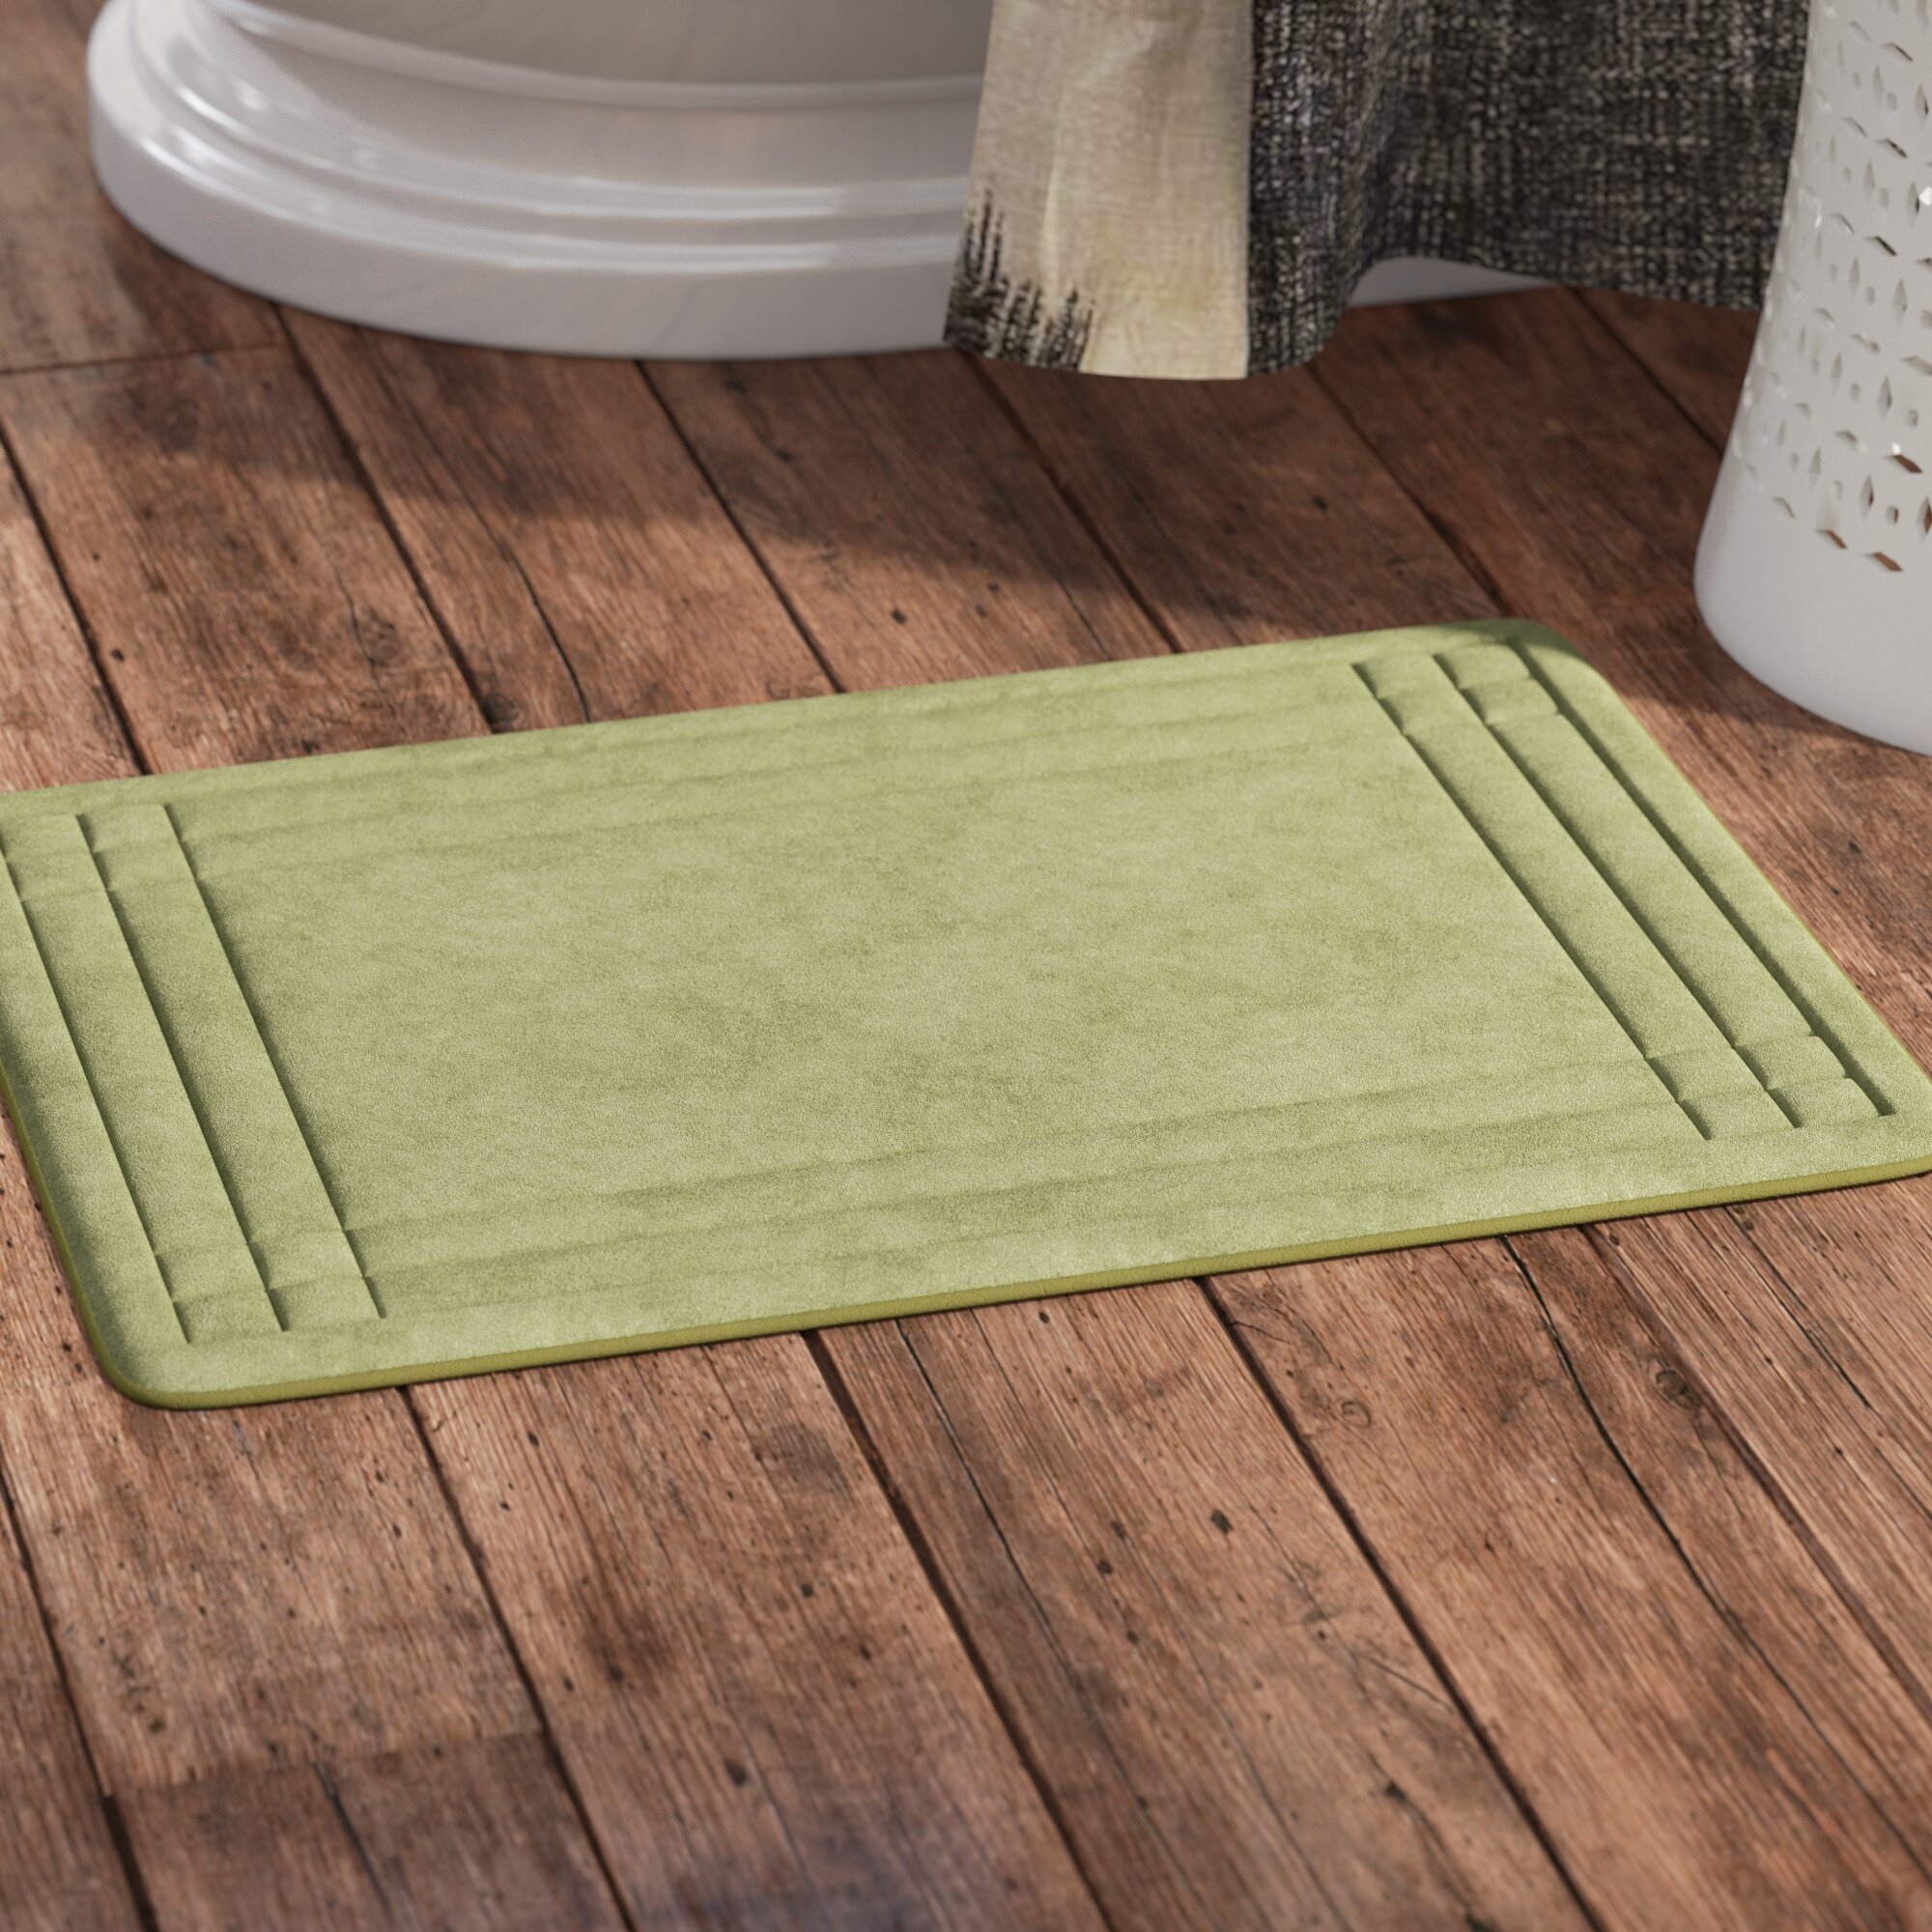 Bright red bathroom rugs - Mcbride Embossed Memory Foam Bath Rug